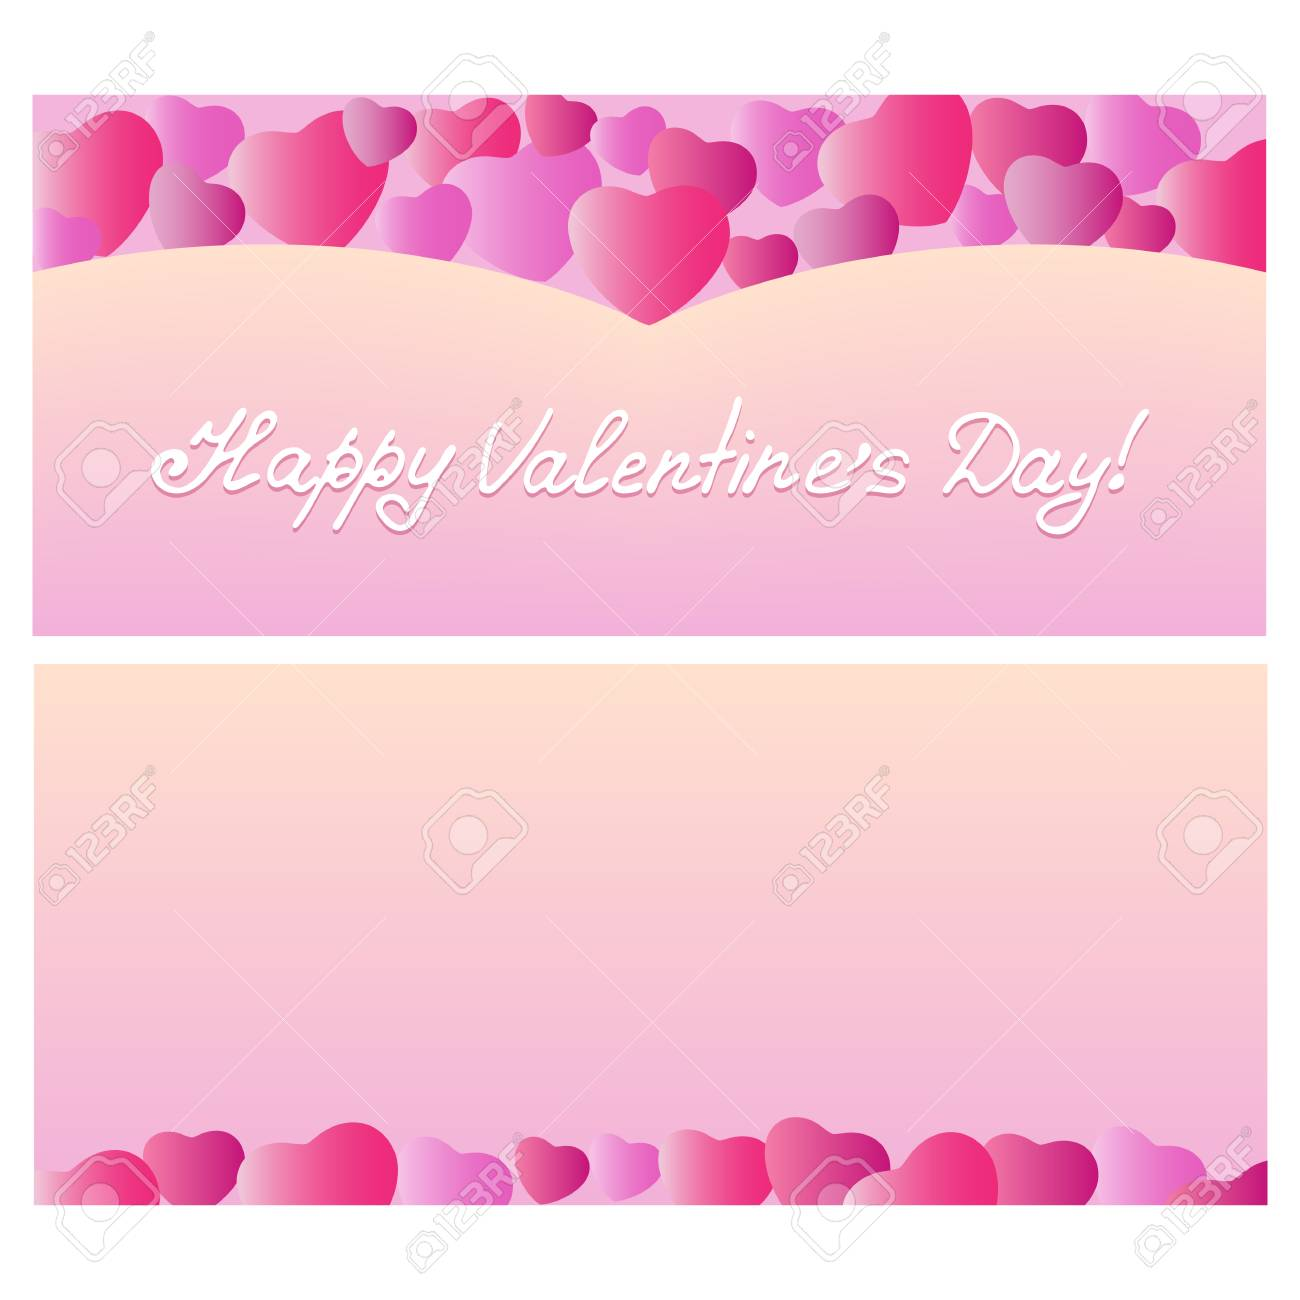 Design Greeting Card Valentines Day With Hearts Template For